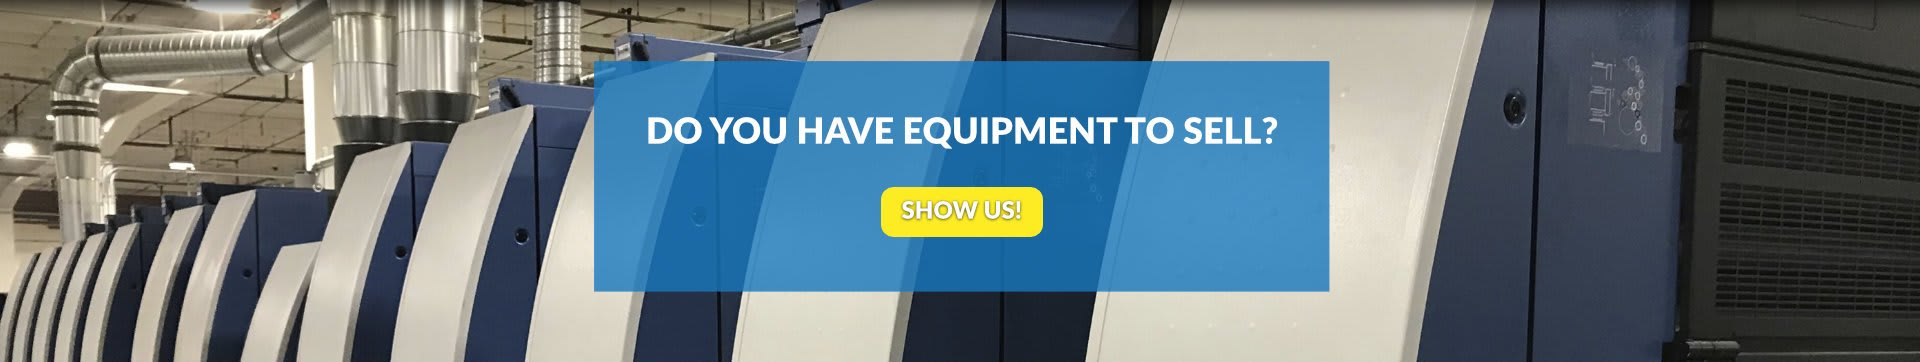 do you have equipment to sell?